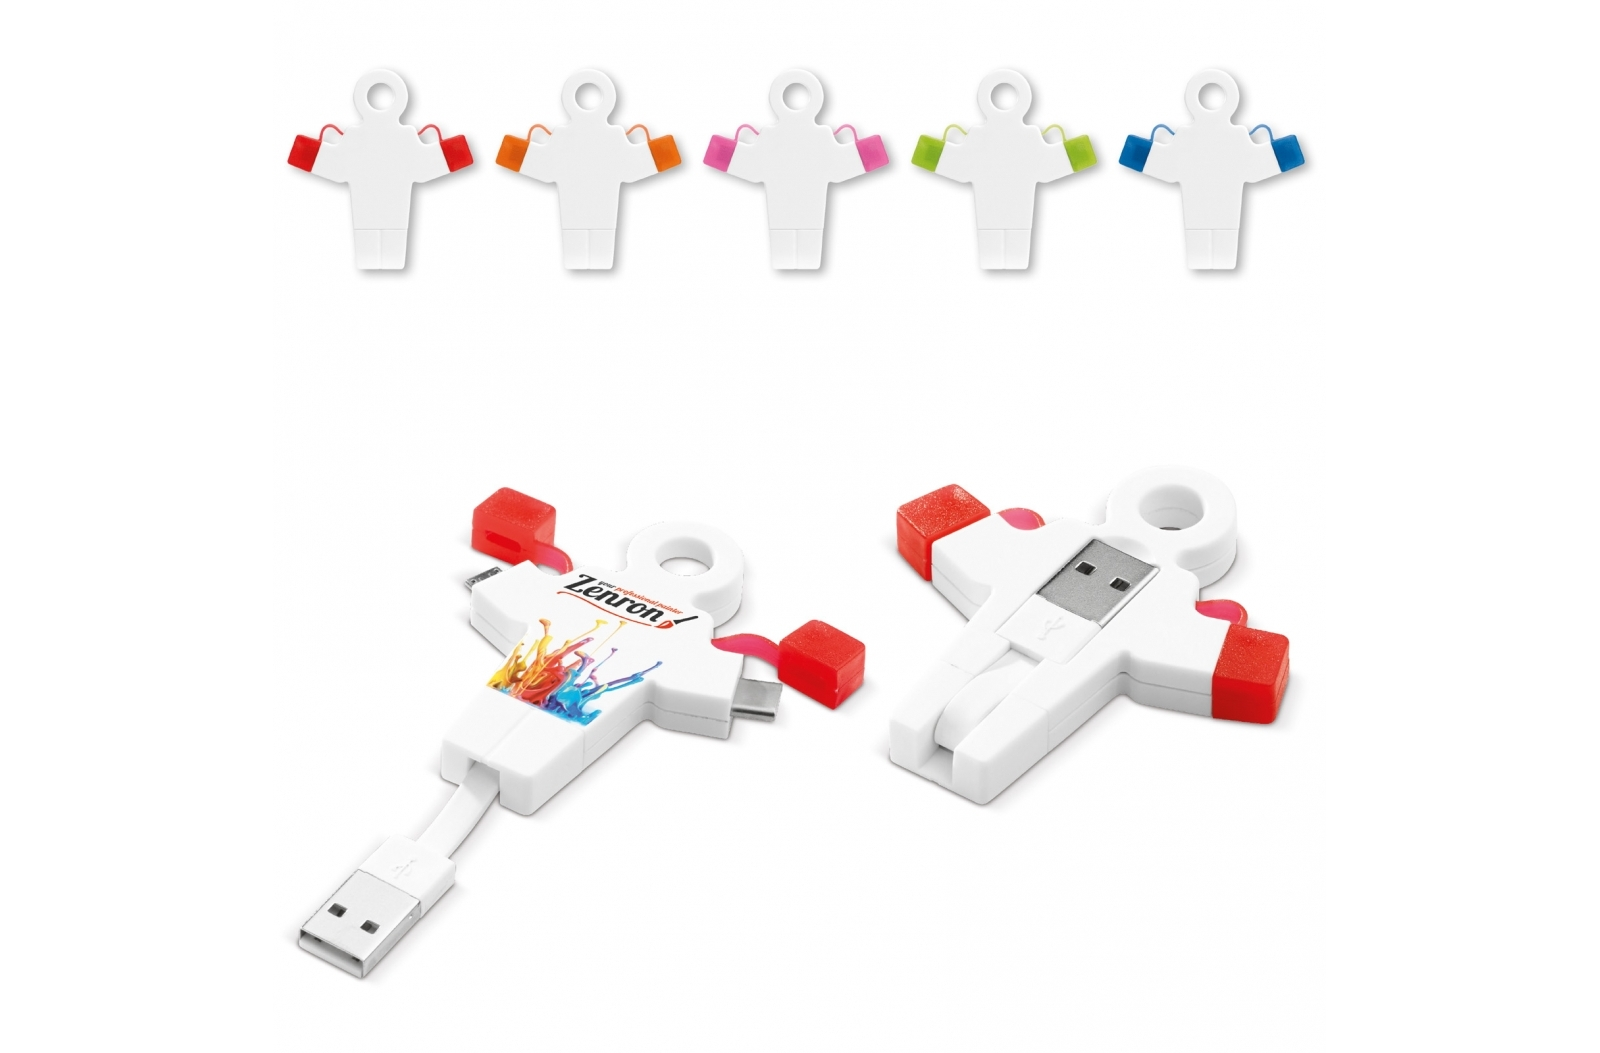 USB connector 2-in-1 Human Link